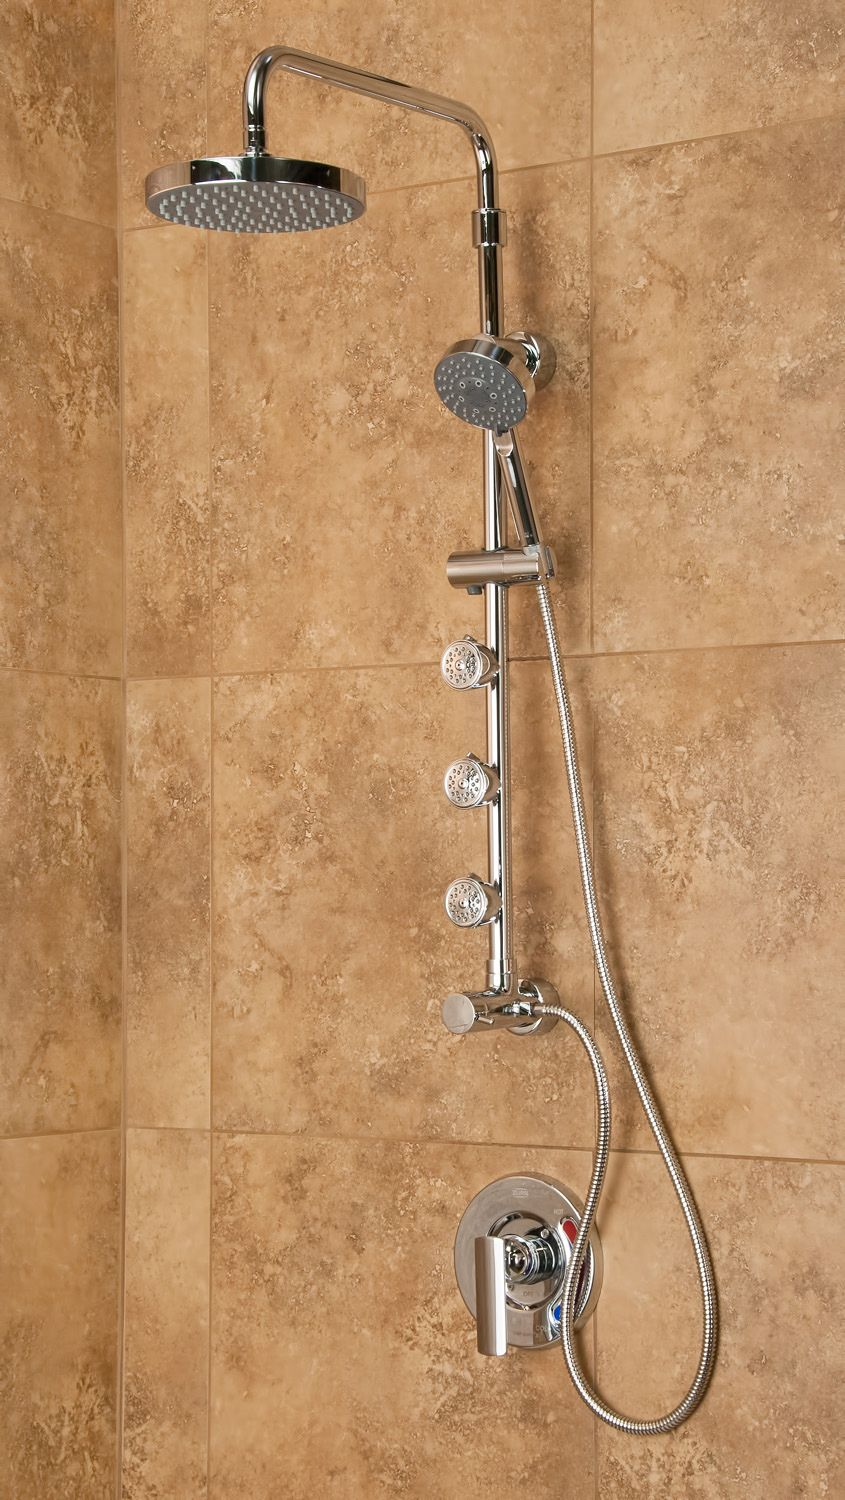 Nature Rain Spa Shower Spa Shower Shower Heads Adjustable